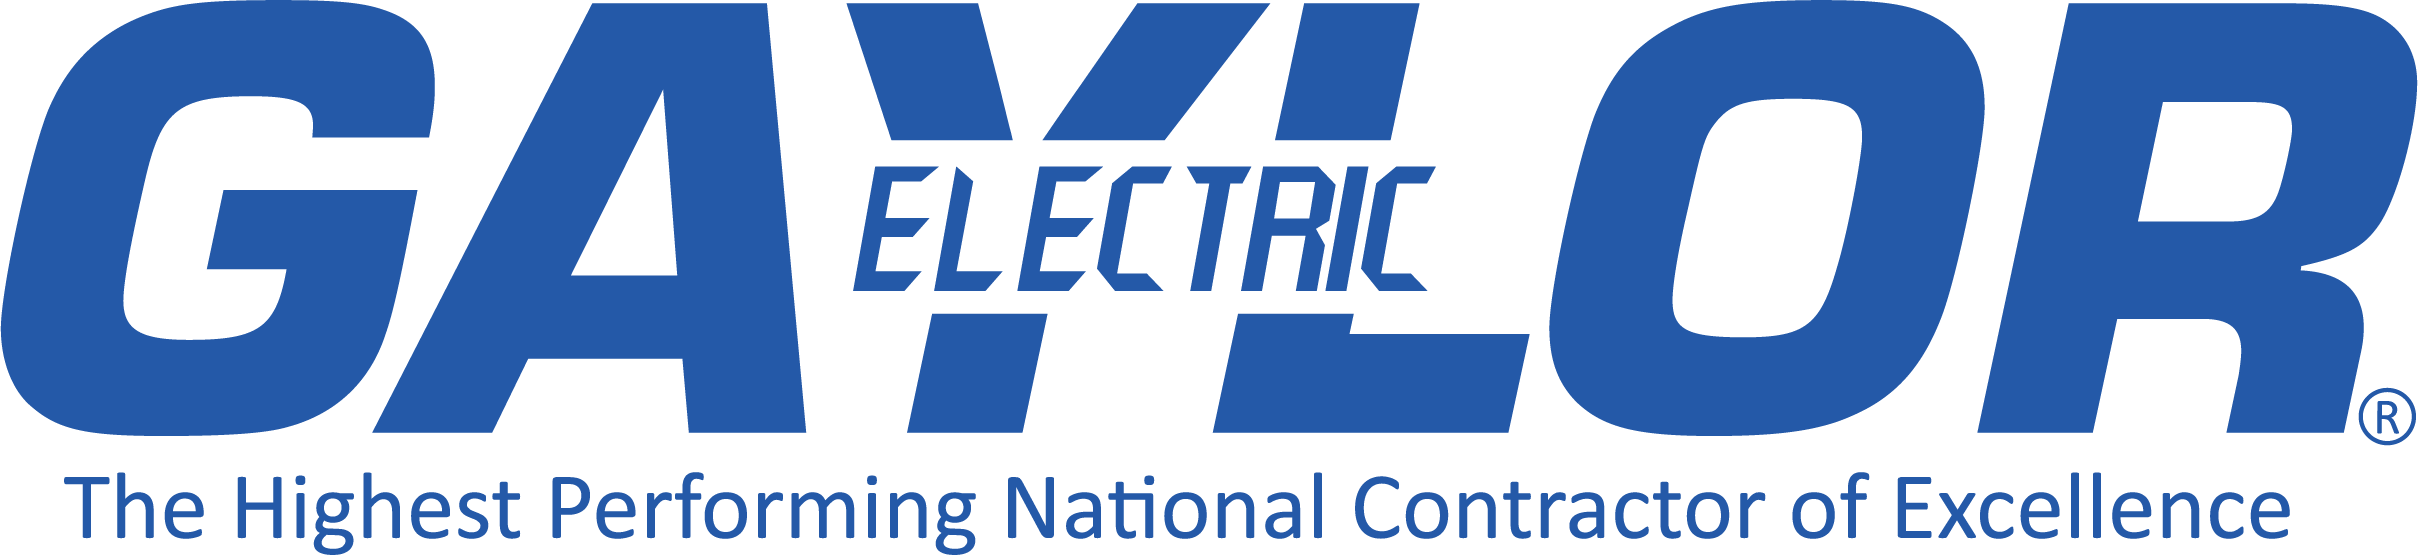 Logo for Gaylor Electric